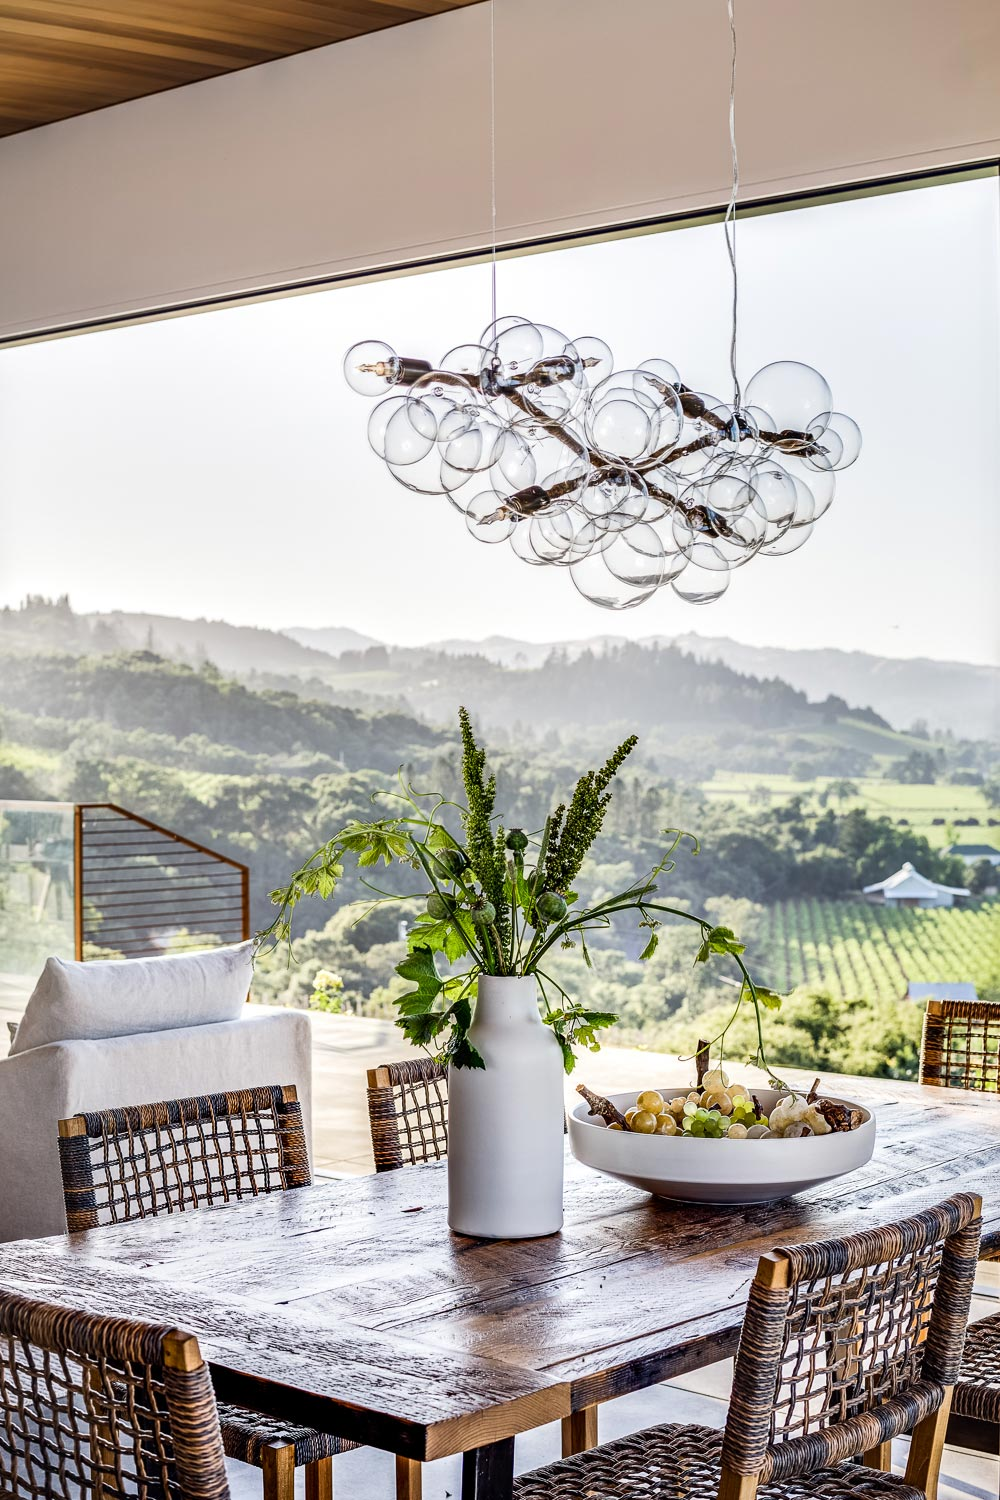 A rustic wood table holds elegant vases. under a dramatic light fixture, with hills and vineyards in the distance.